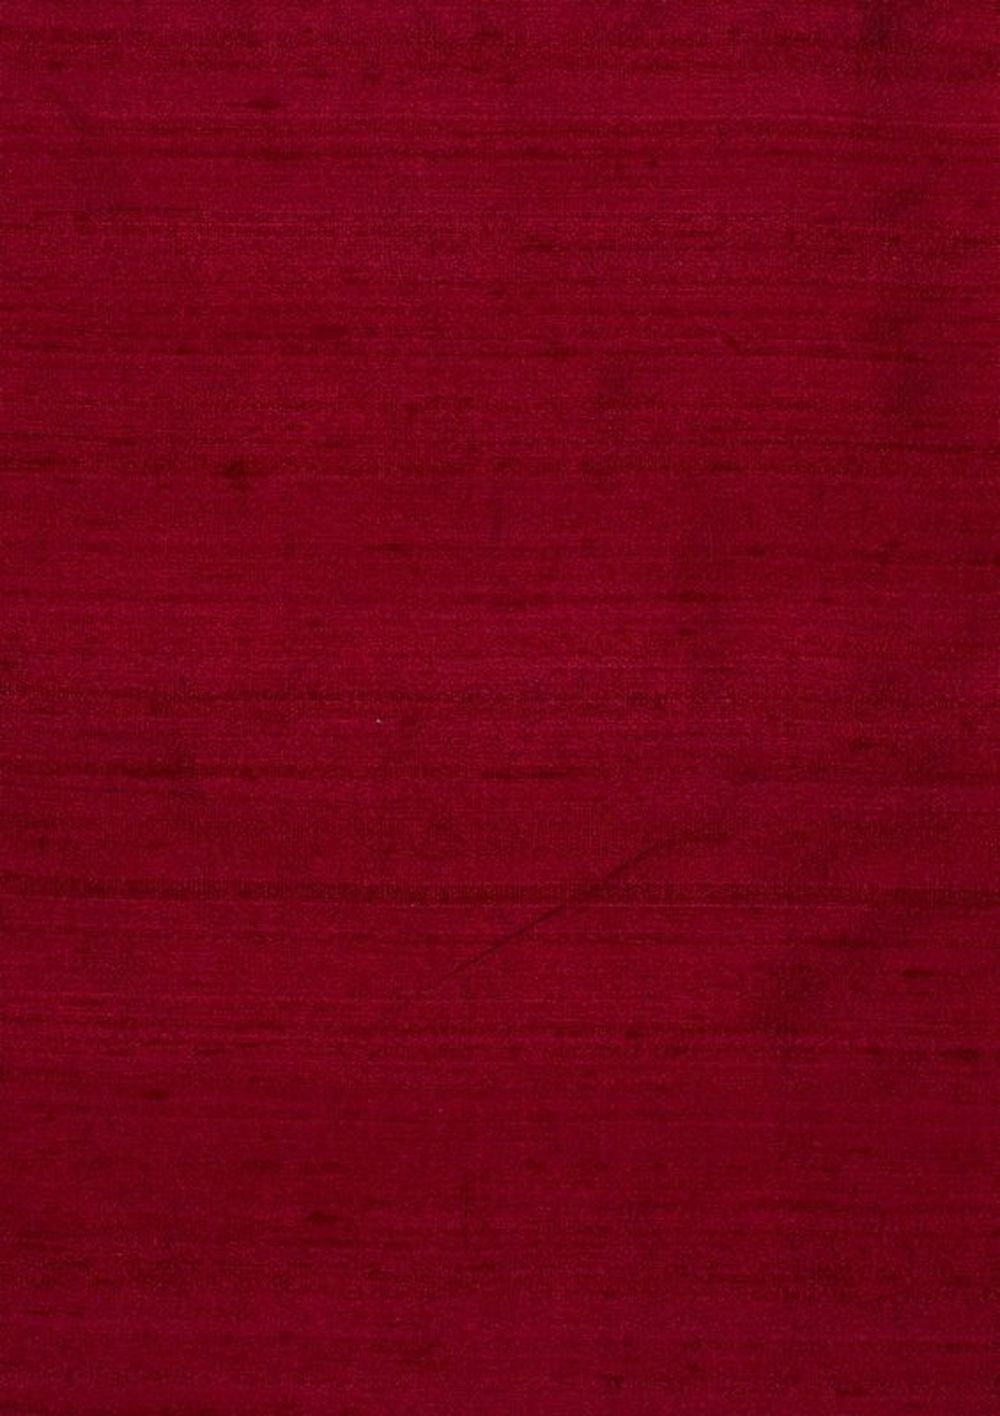 Photo of the fabric Indulgence Sangria-192 swatch by Zepel. Use for Curtains. Style of Plain